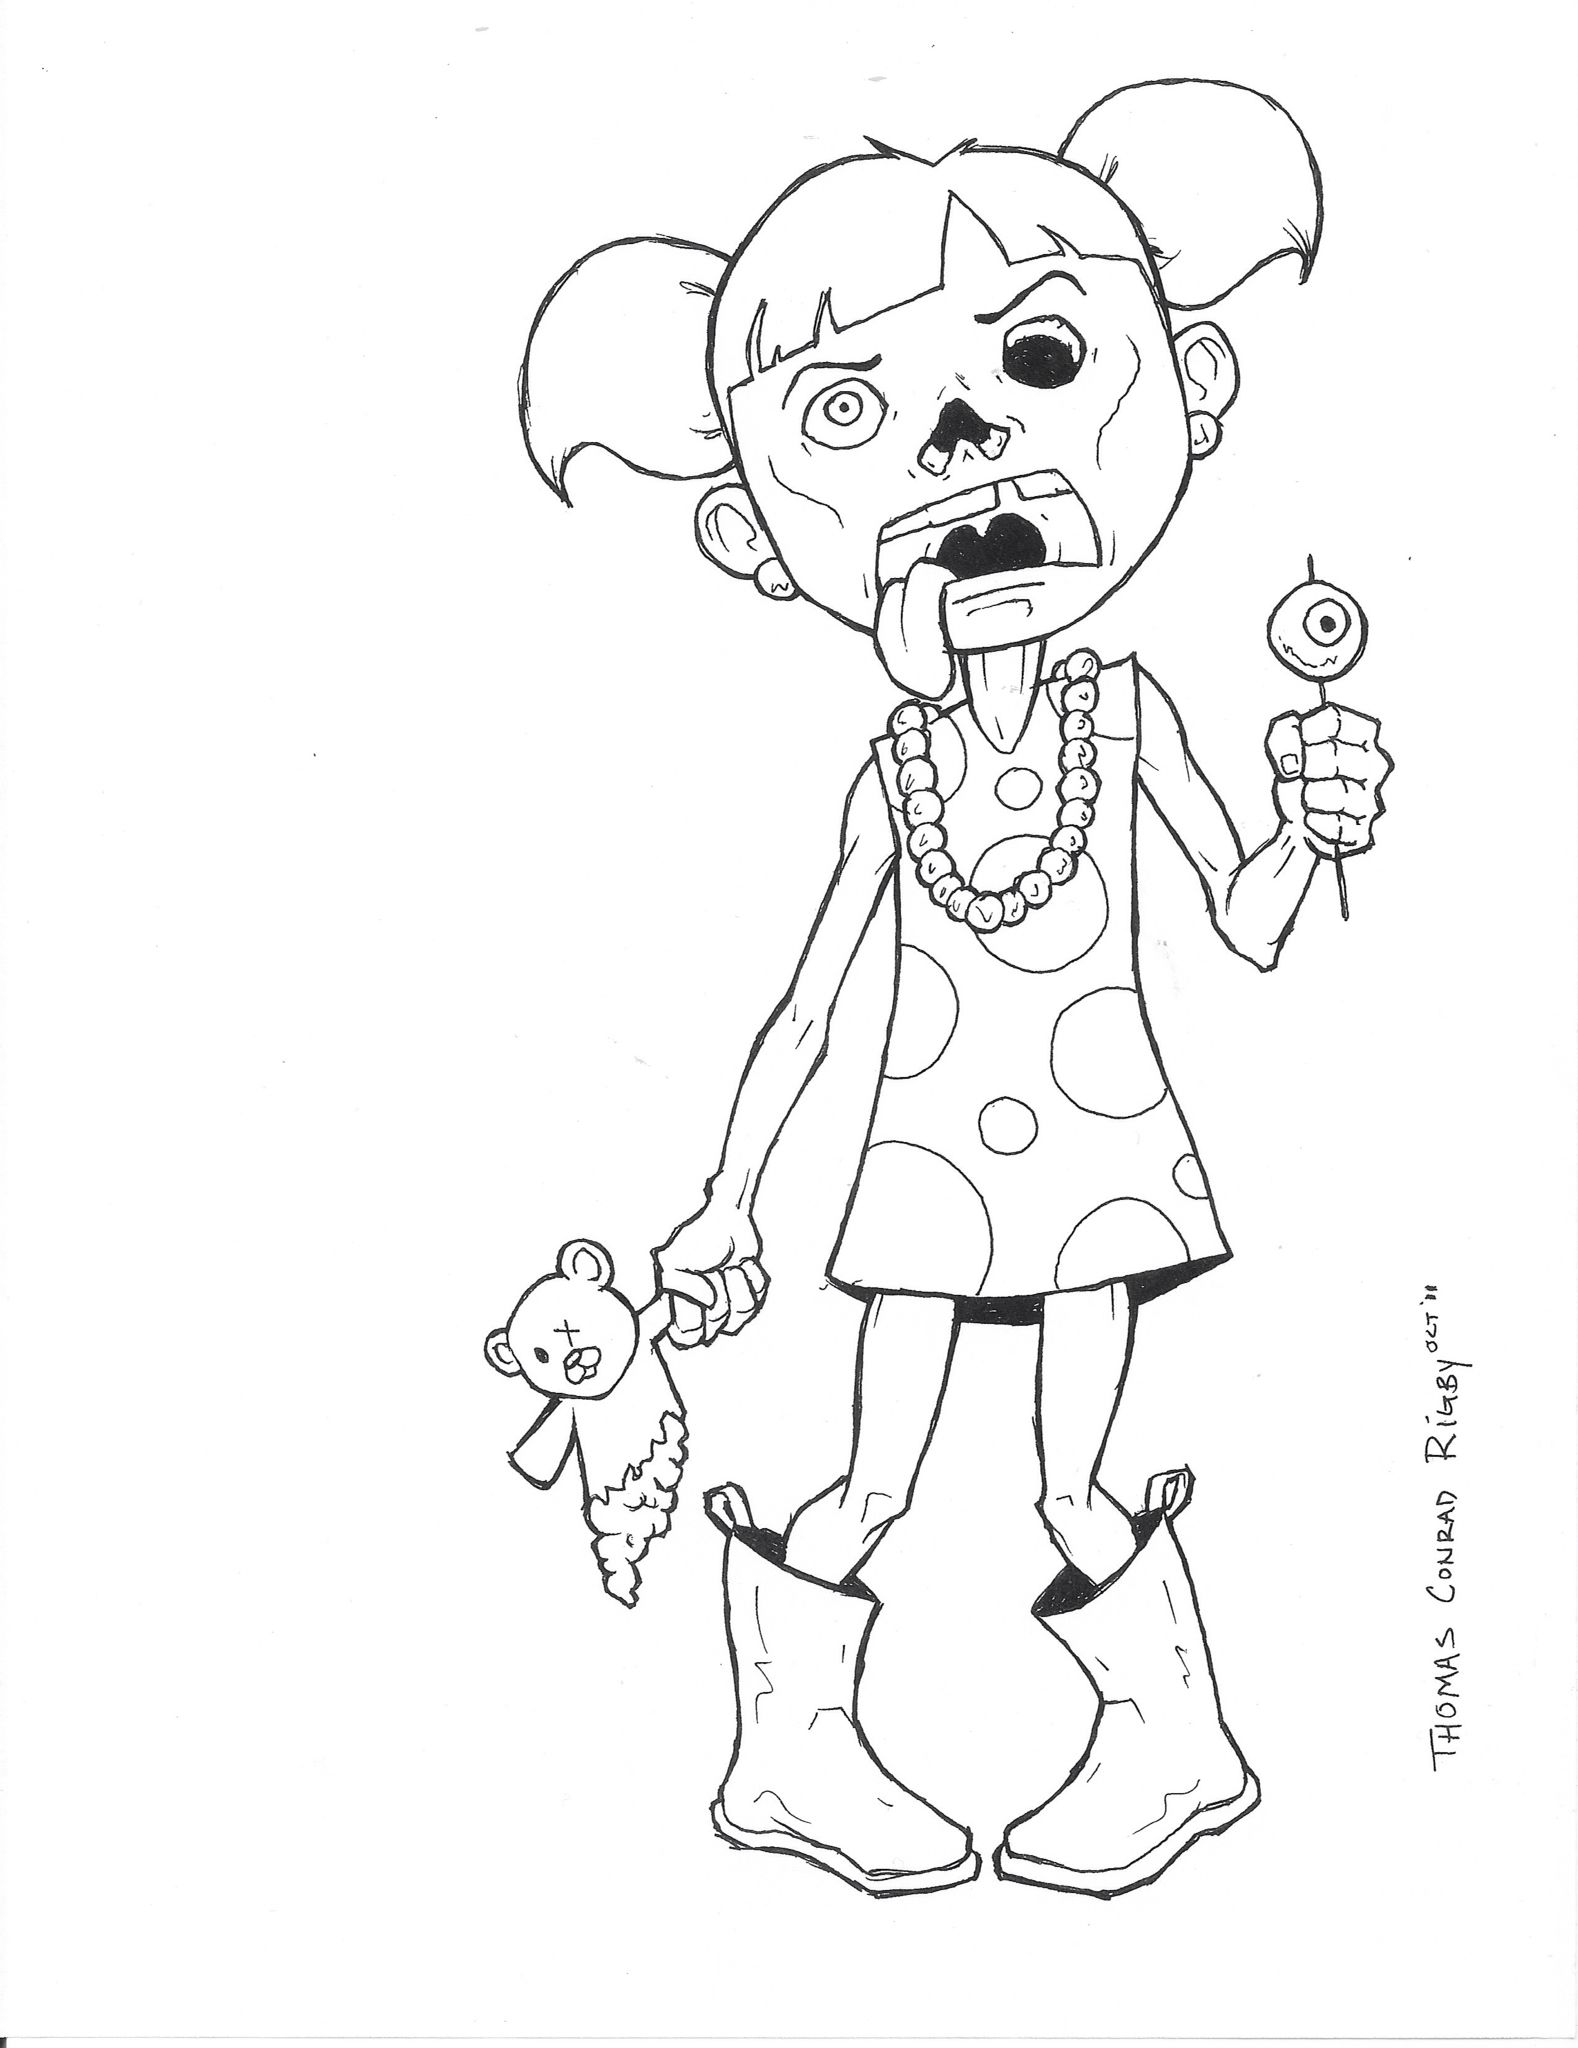 Zombie Coloring Page Fall Coloring Pages Disney Coloring Pages Cute Coloring Pages